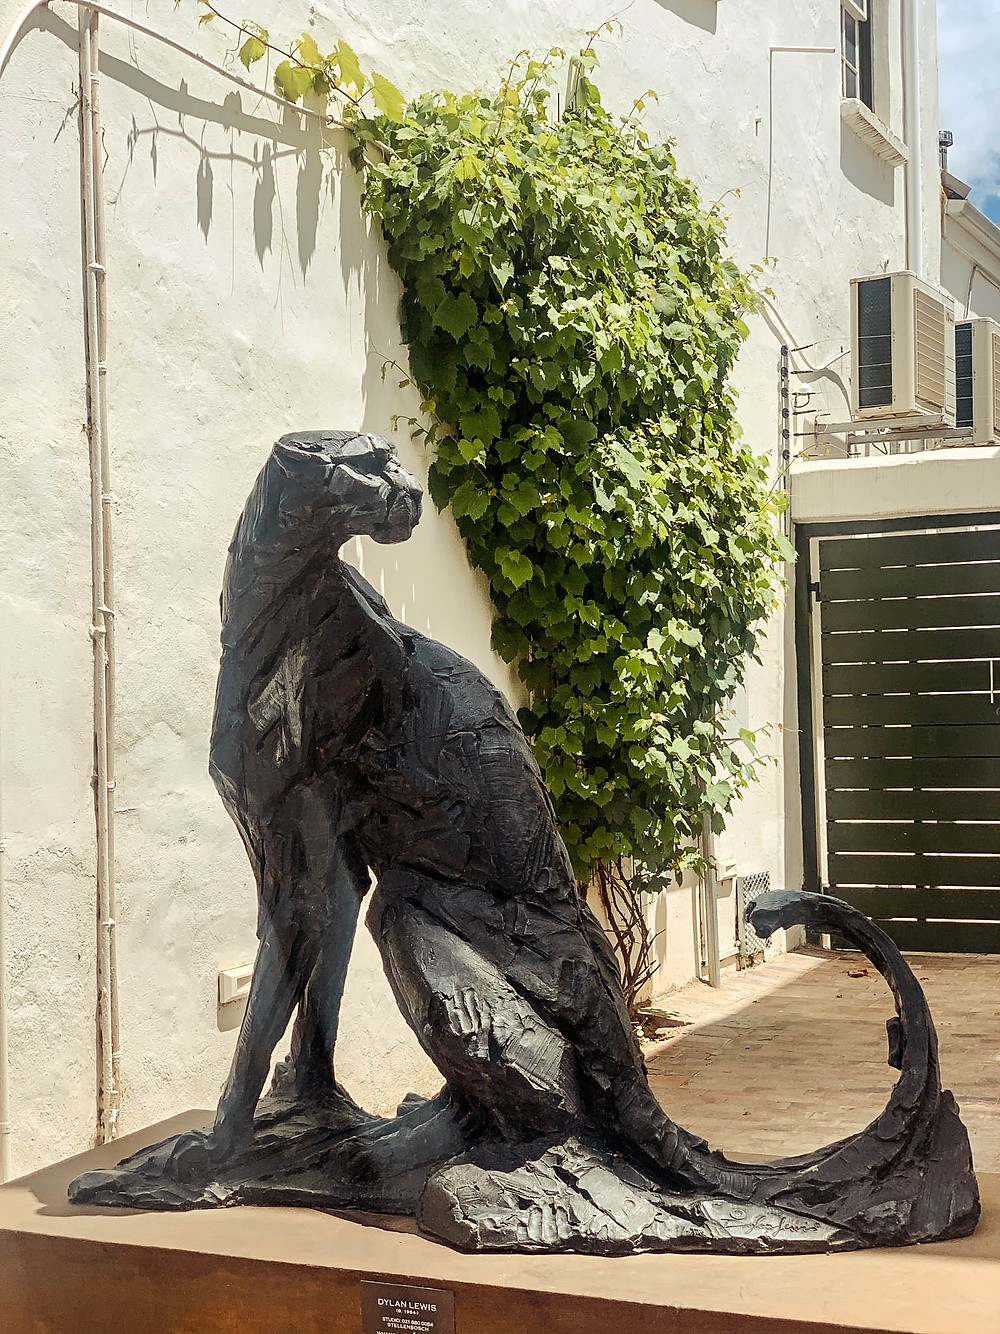 Like wine towns throughout the world, Stellenbosch has tons of art - and art galleries